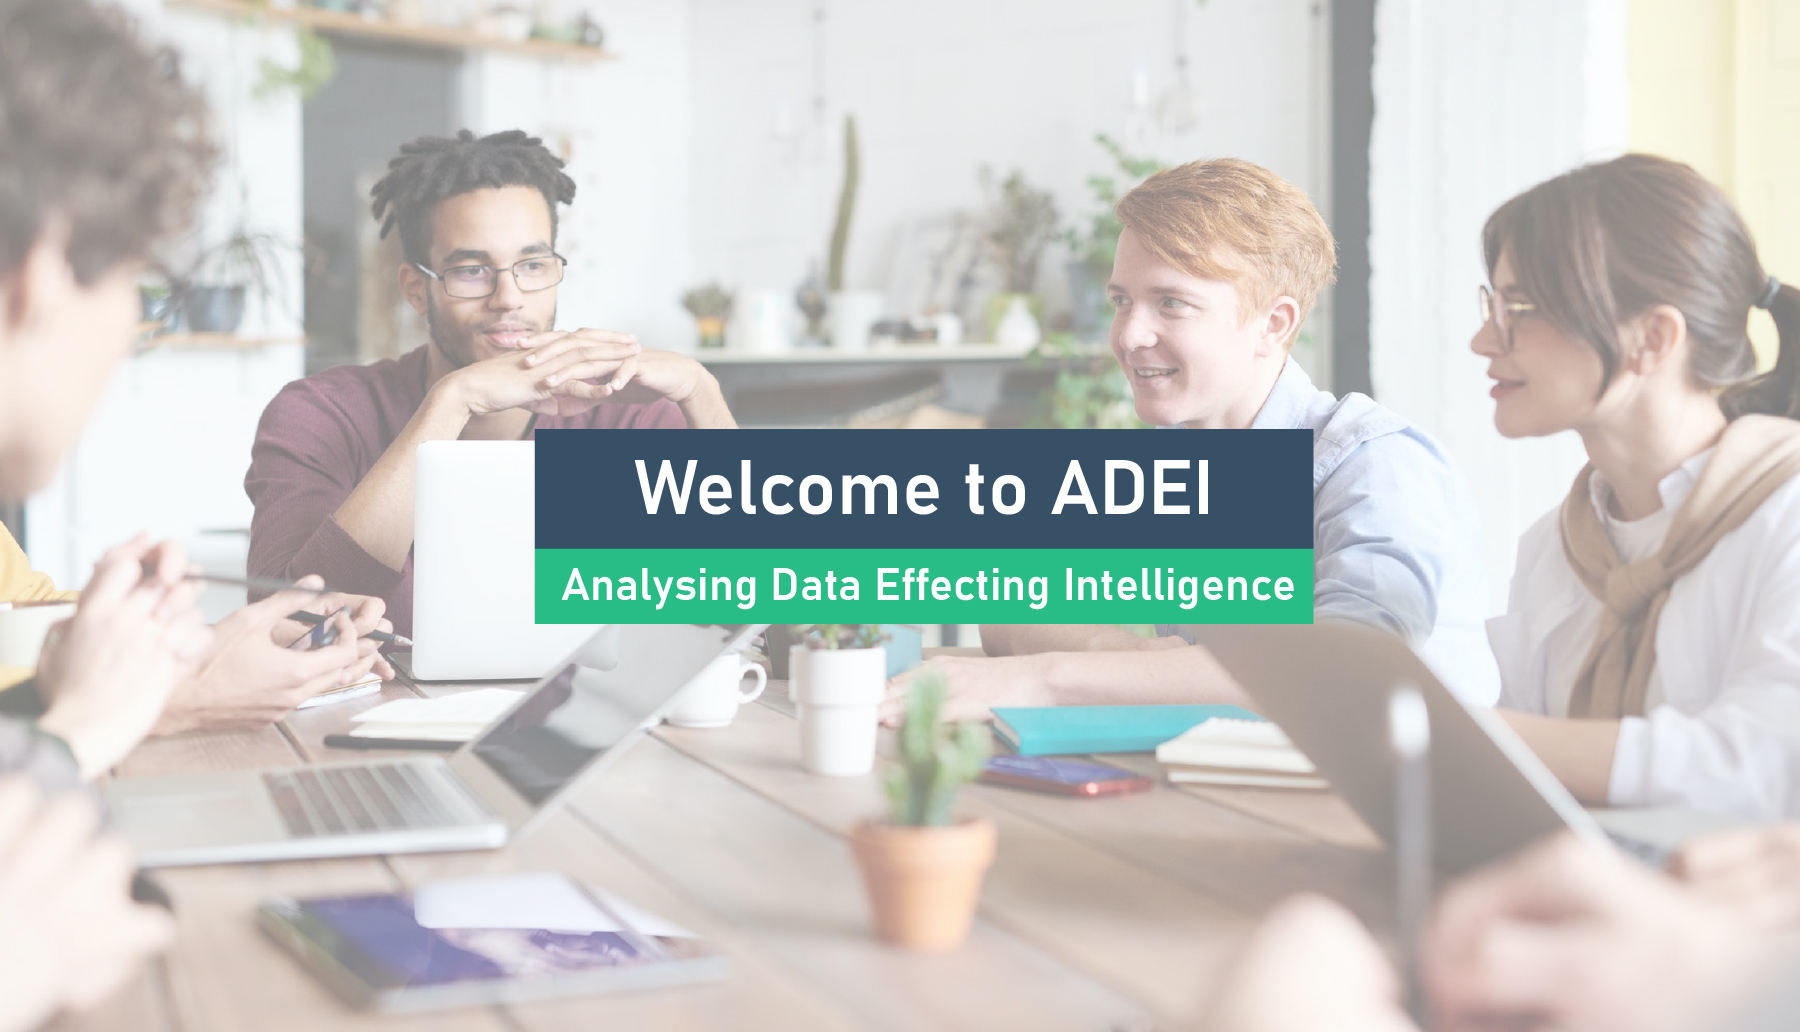 Adei-welceome-banner-2